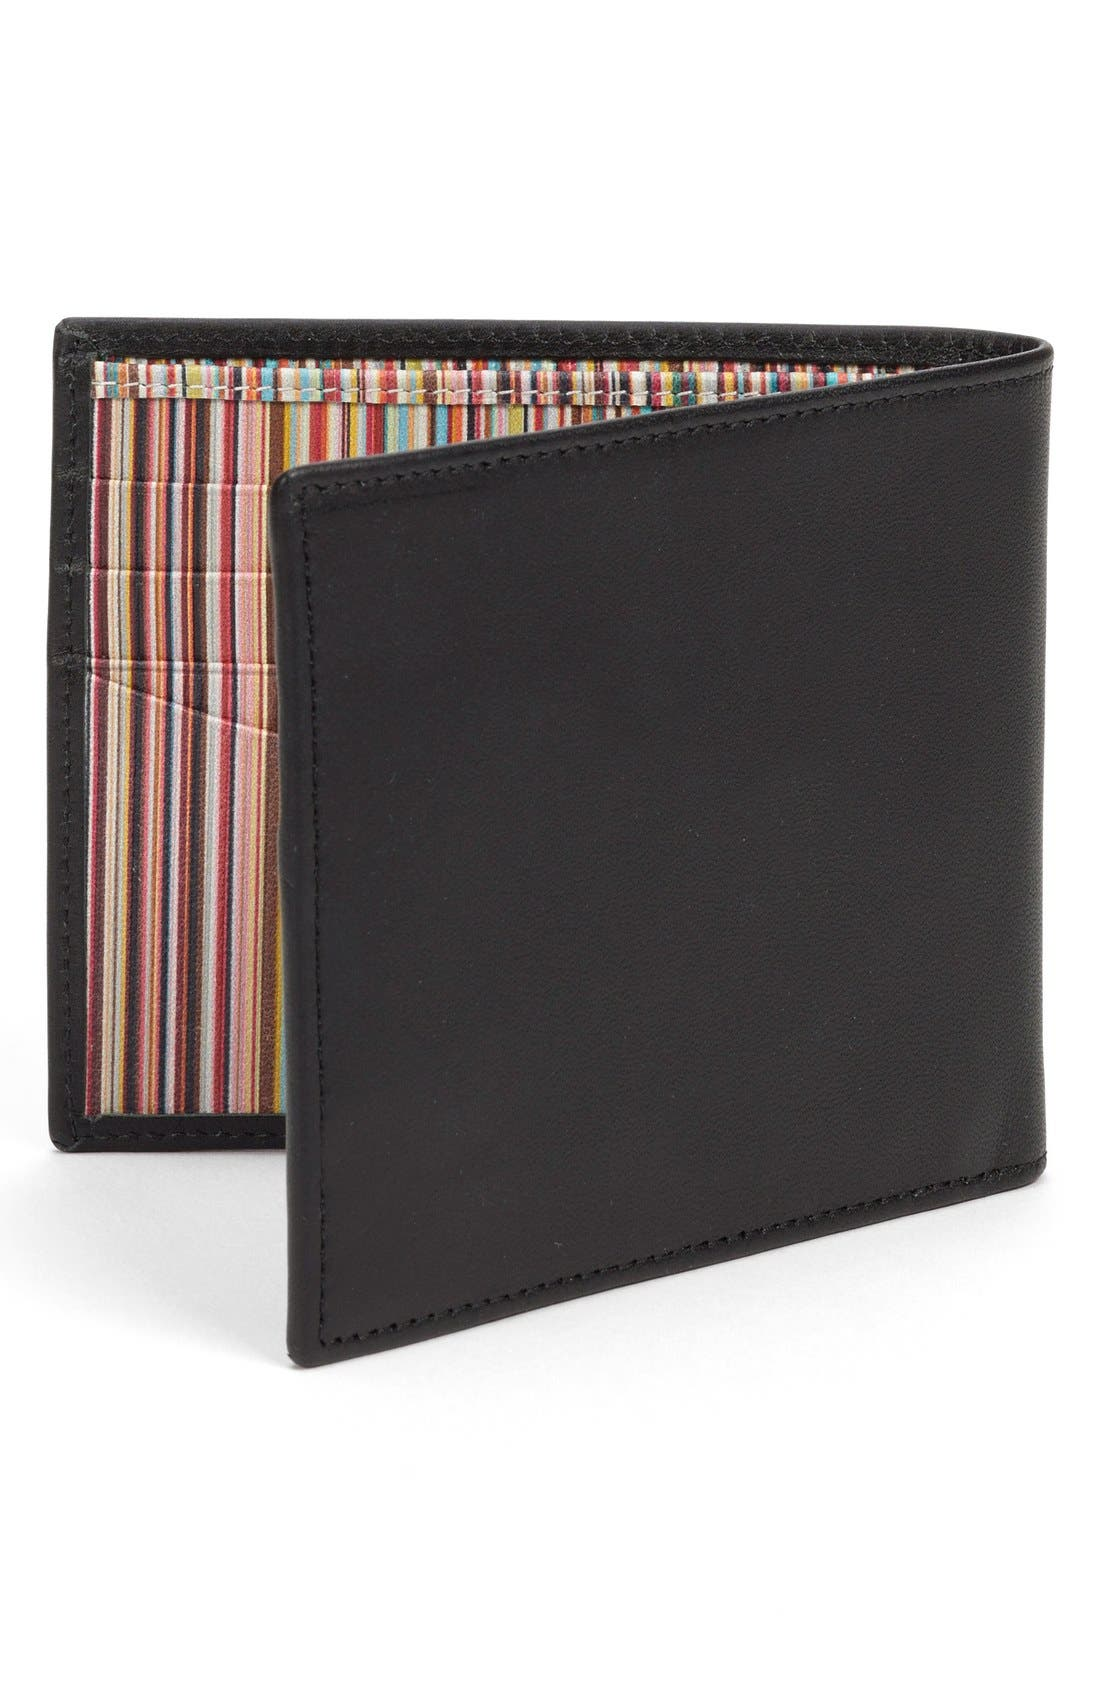 Interior Stripe Leather Billfold,                             Alternate thumbnail 2, color,                             001